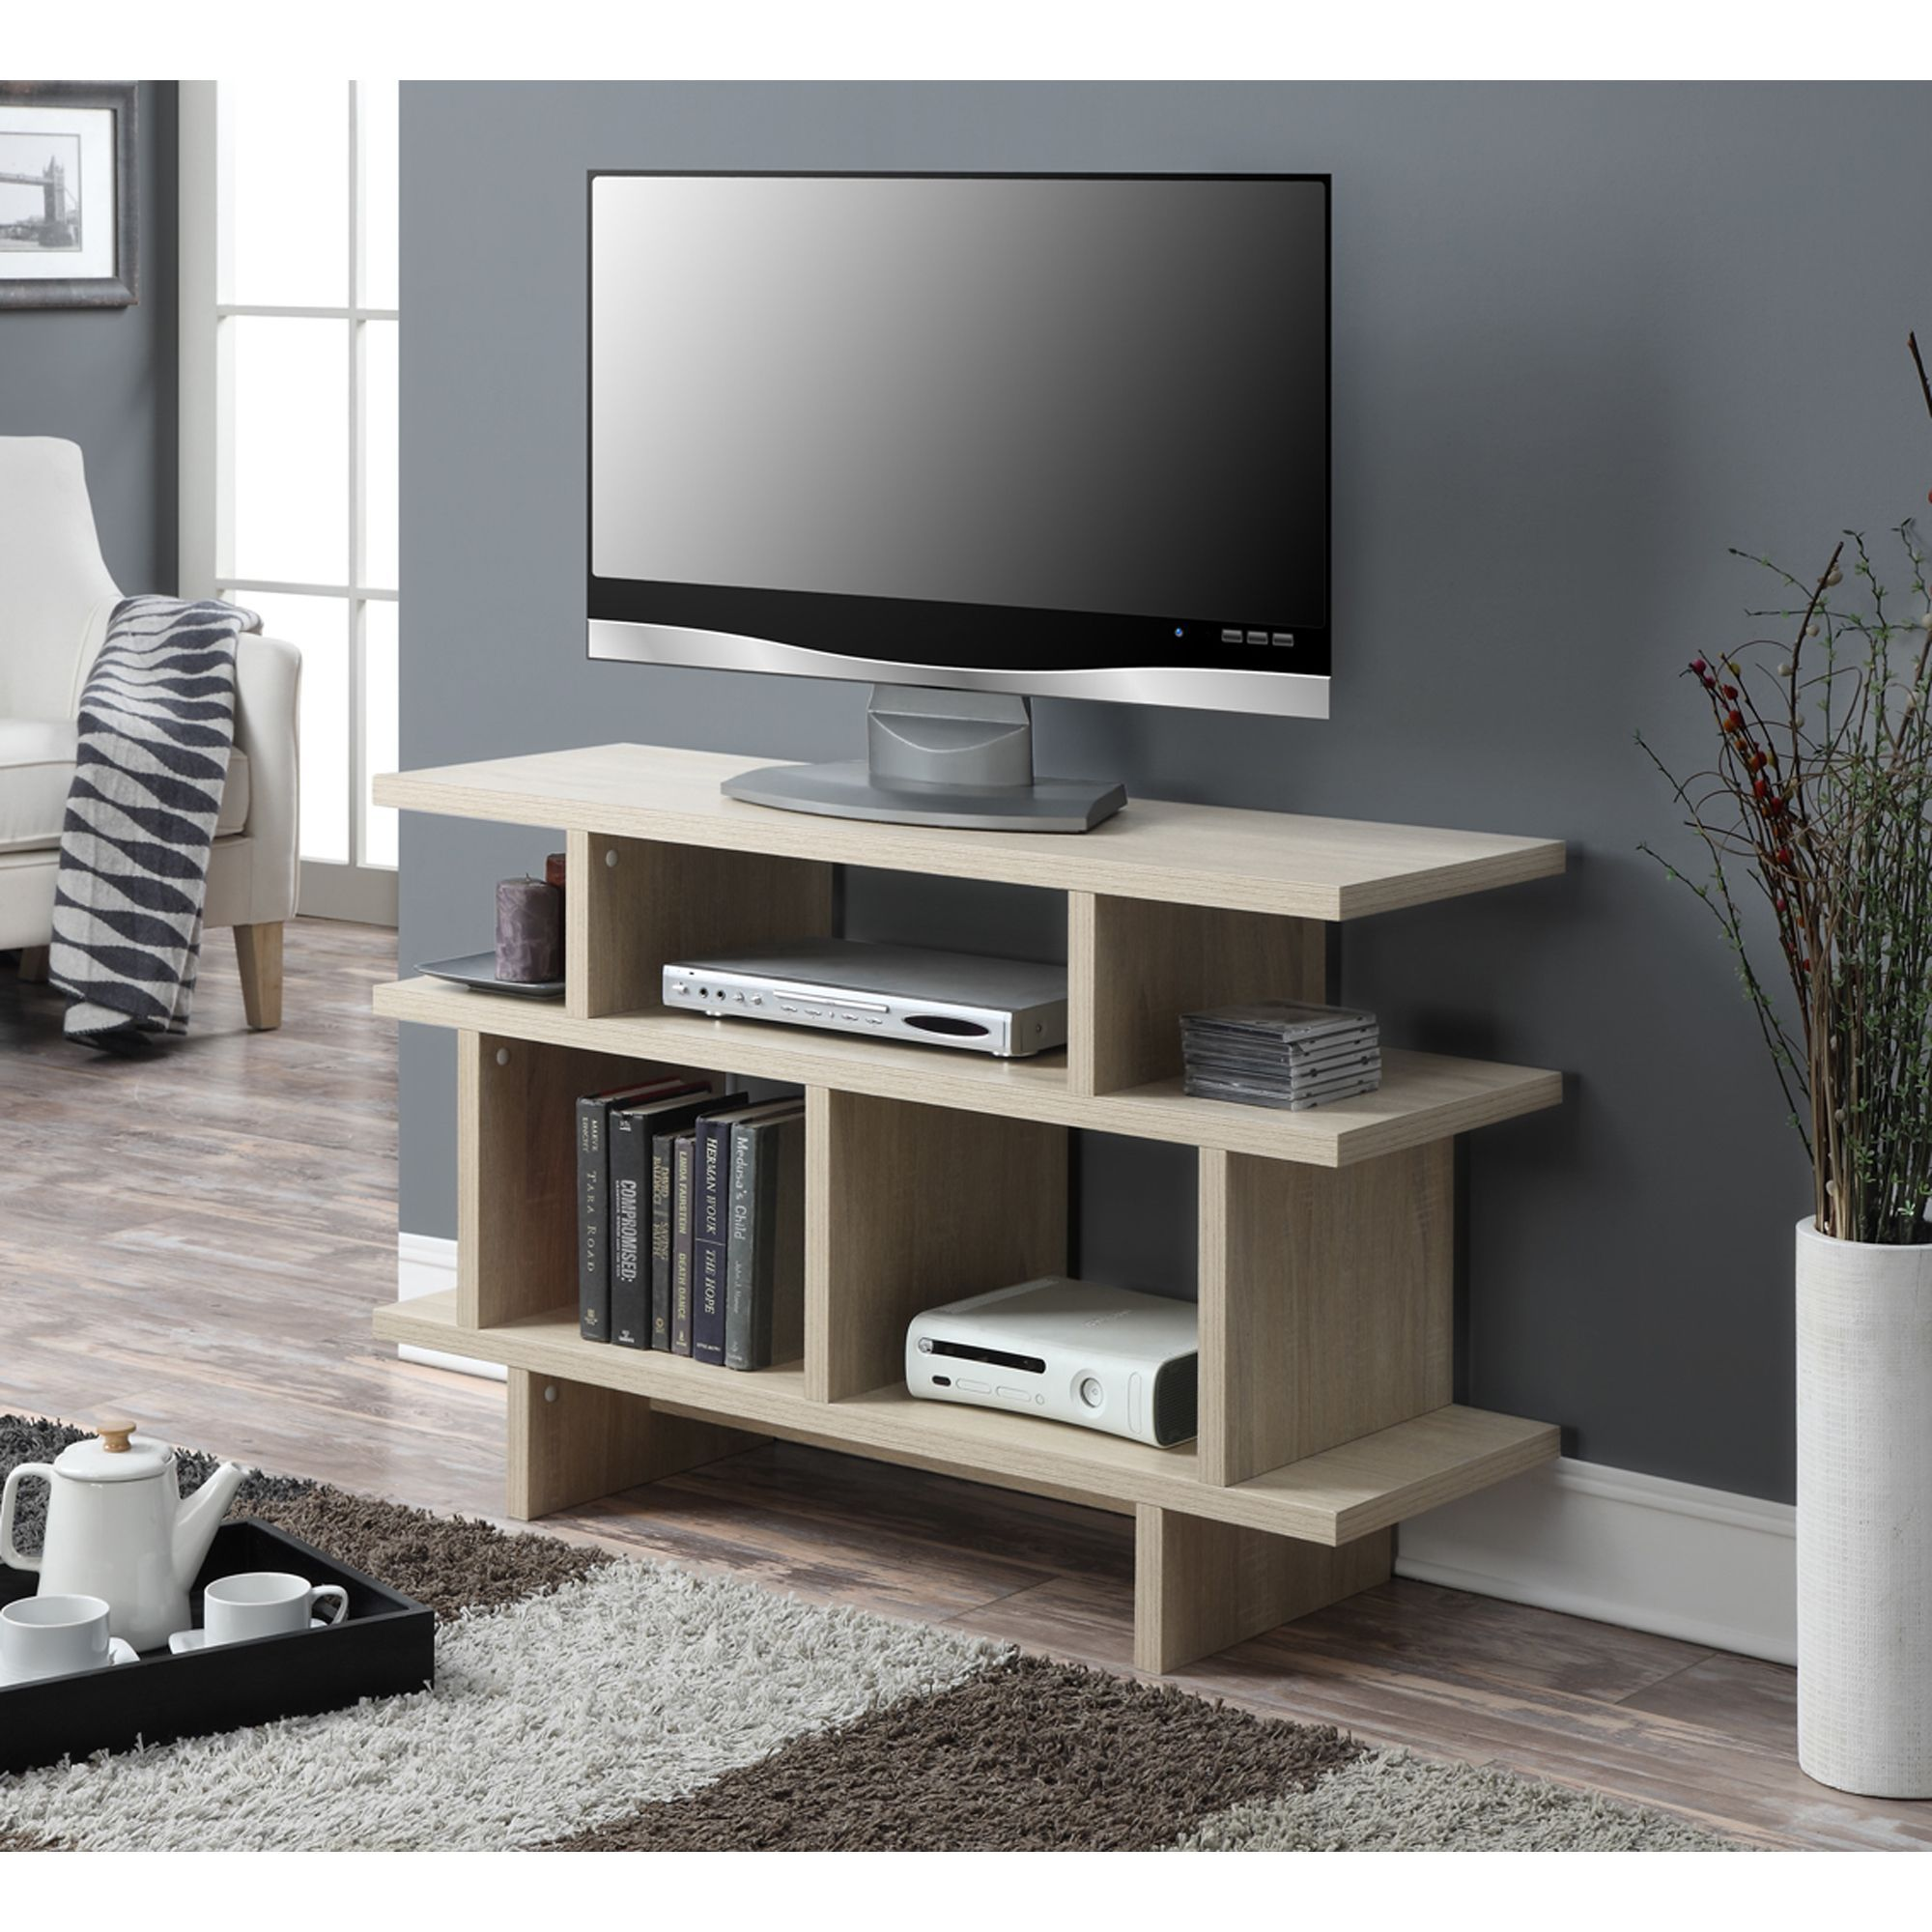 Display Your Television And Organize Your Media Center Using This